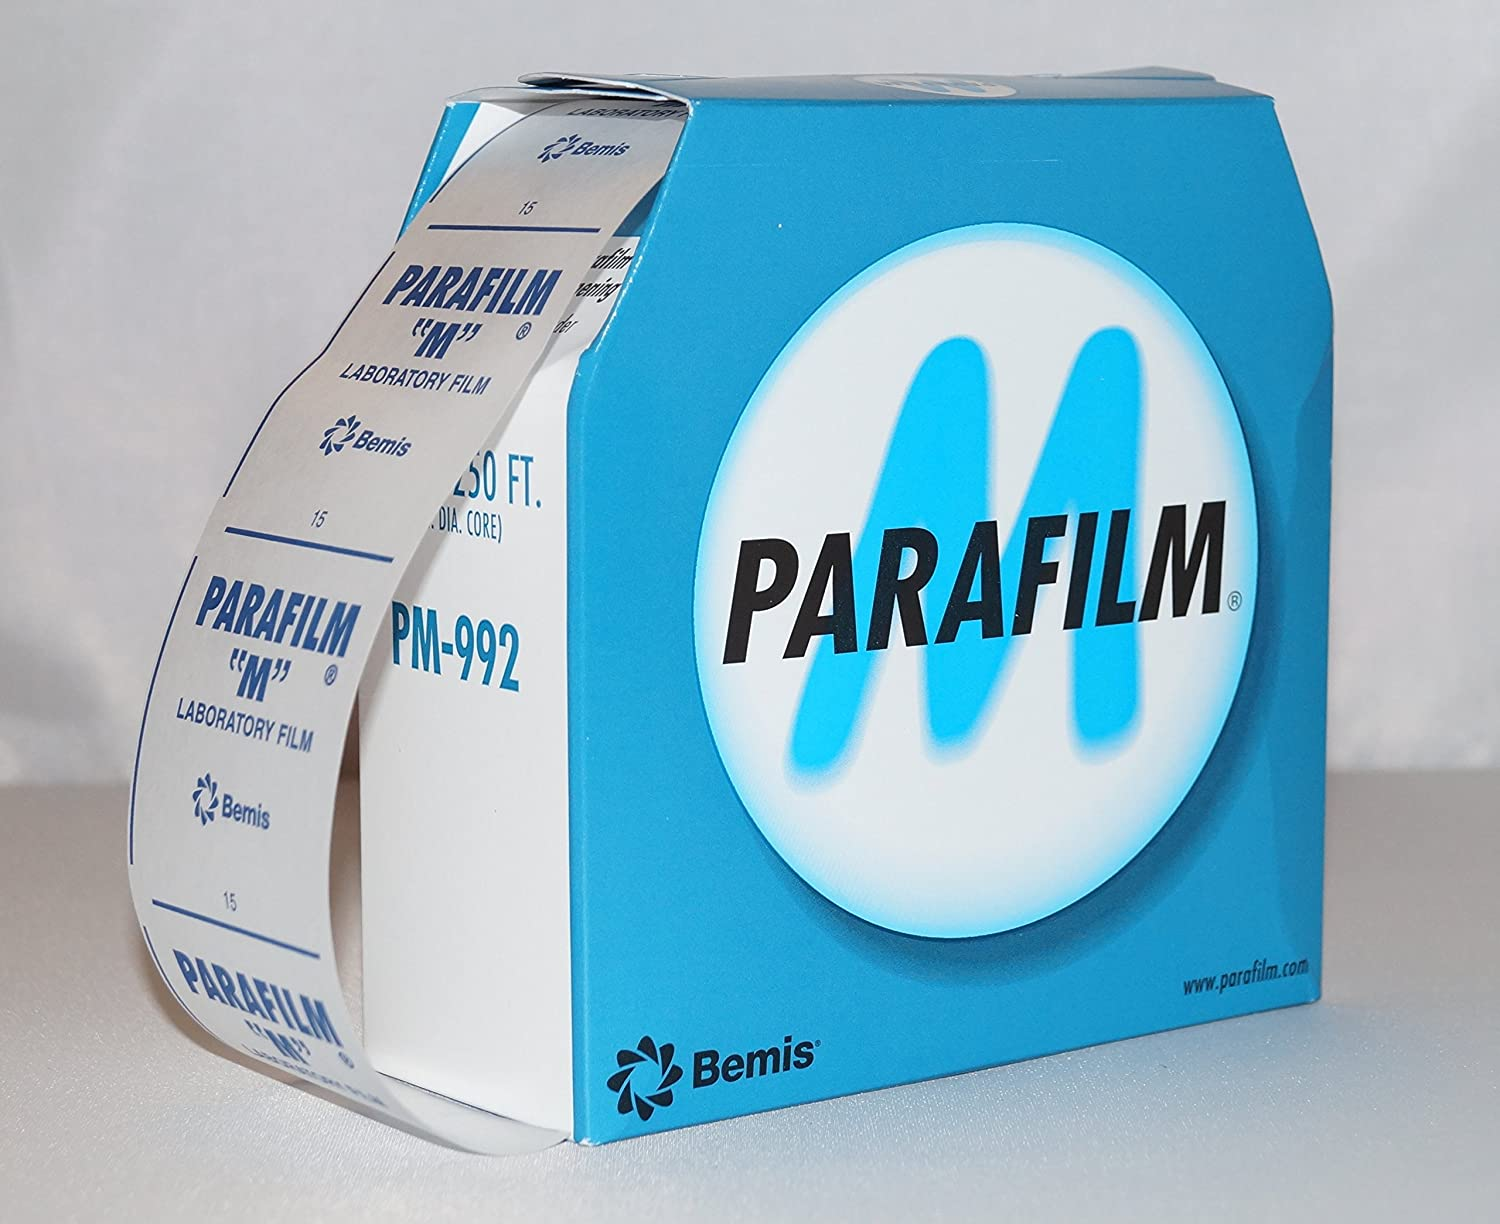 Parafilm 75m x 50mm (2 IN. x 250 FT.) for isolating and sealing bottles to close taping isolating most of all bottles shapes or containers Slkfactory SLK GmbH